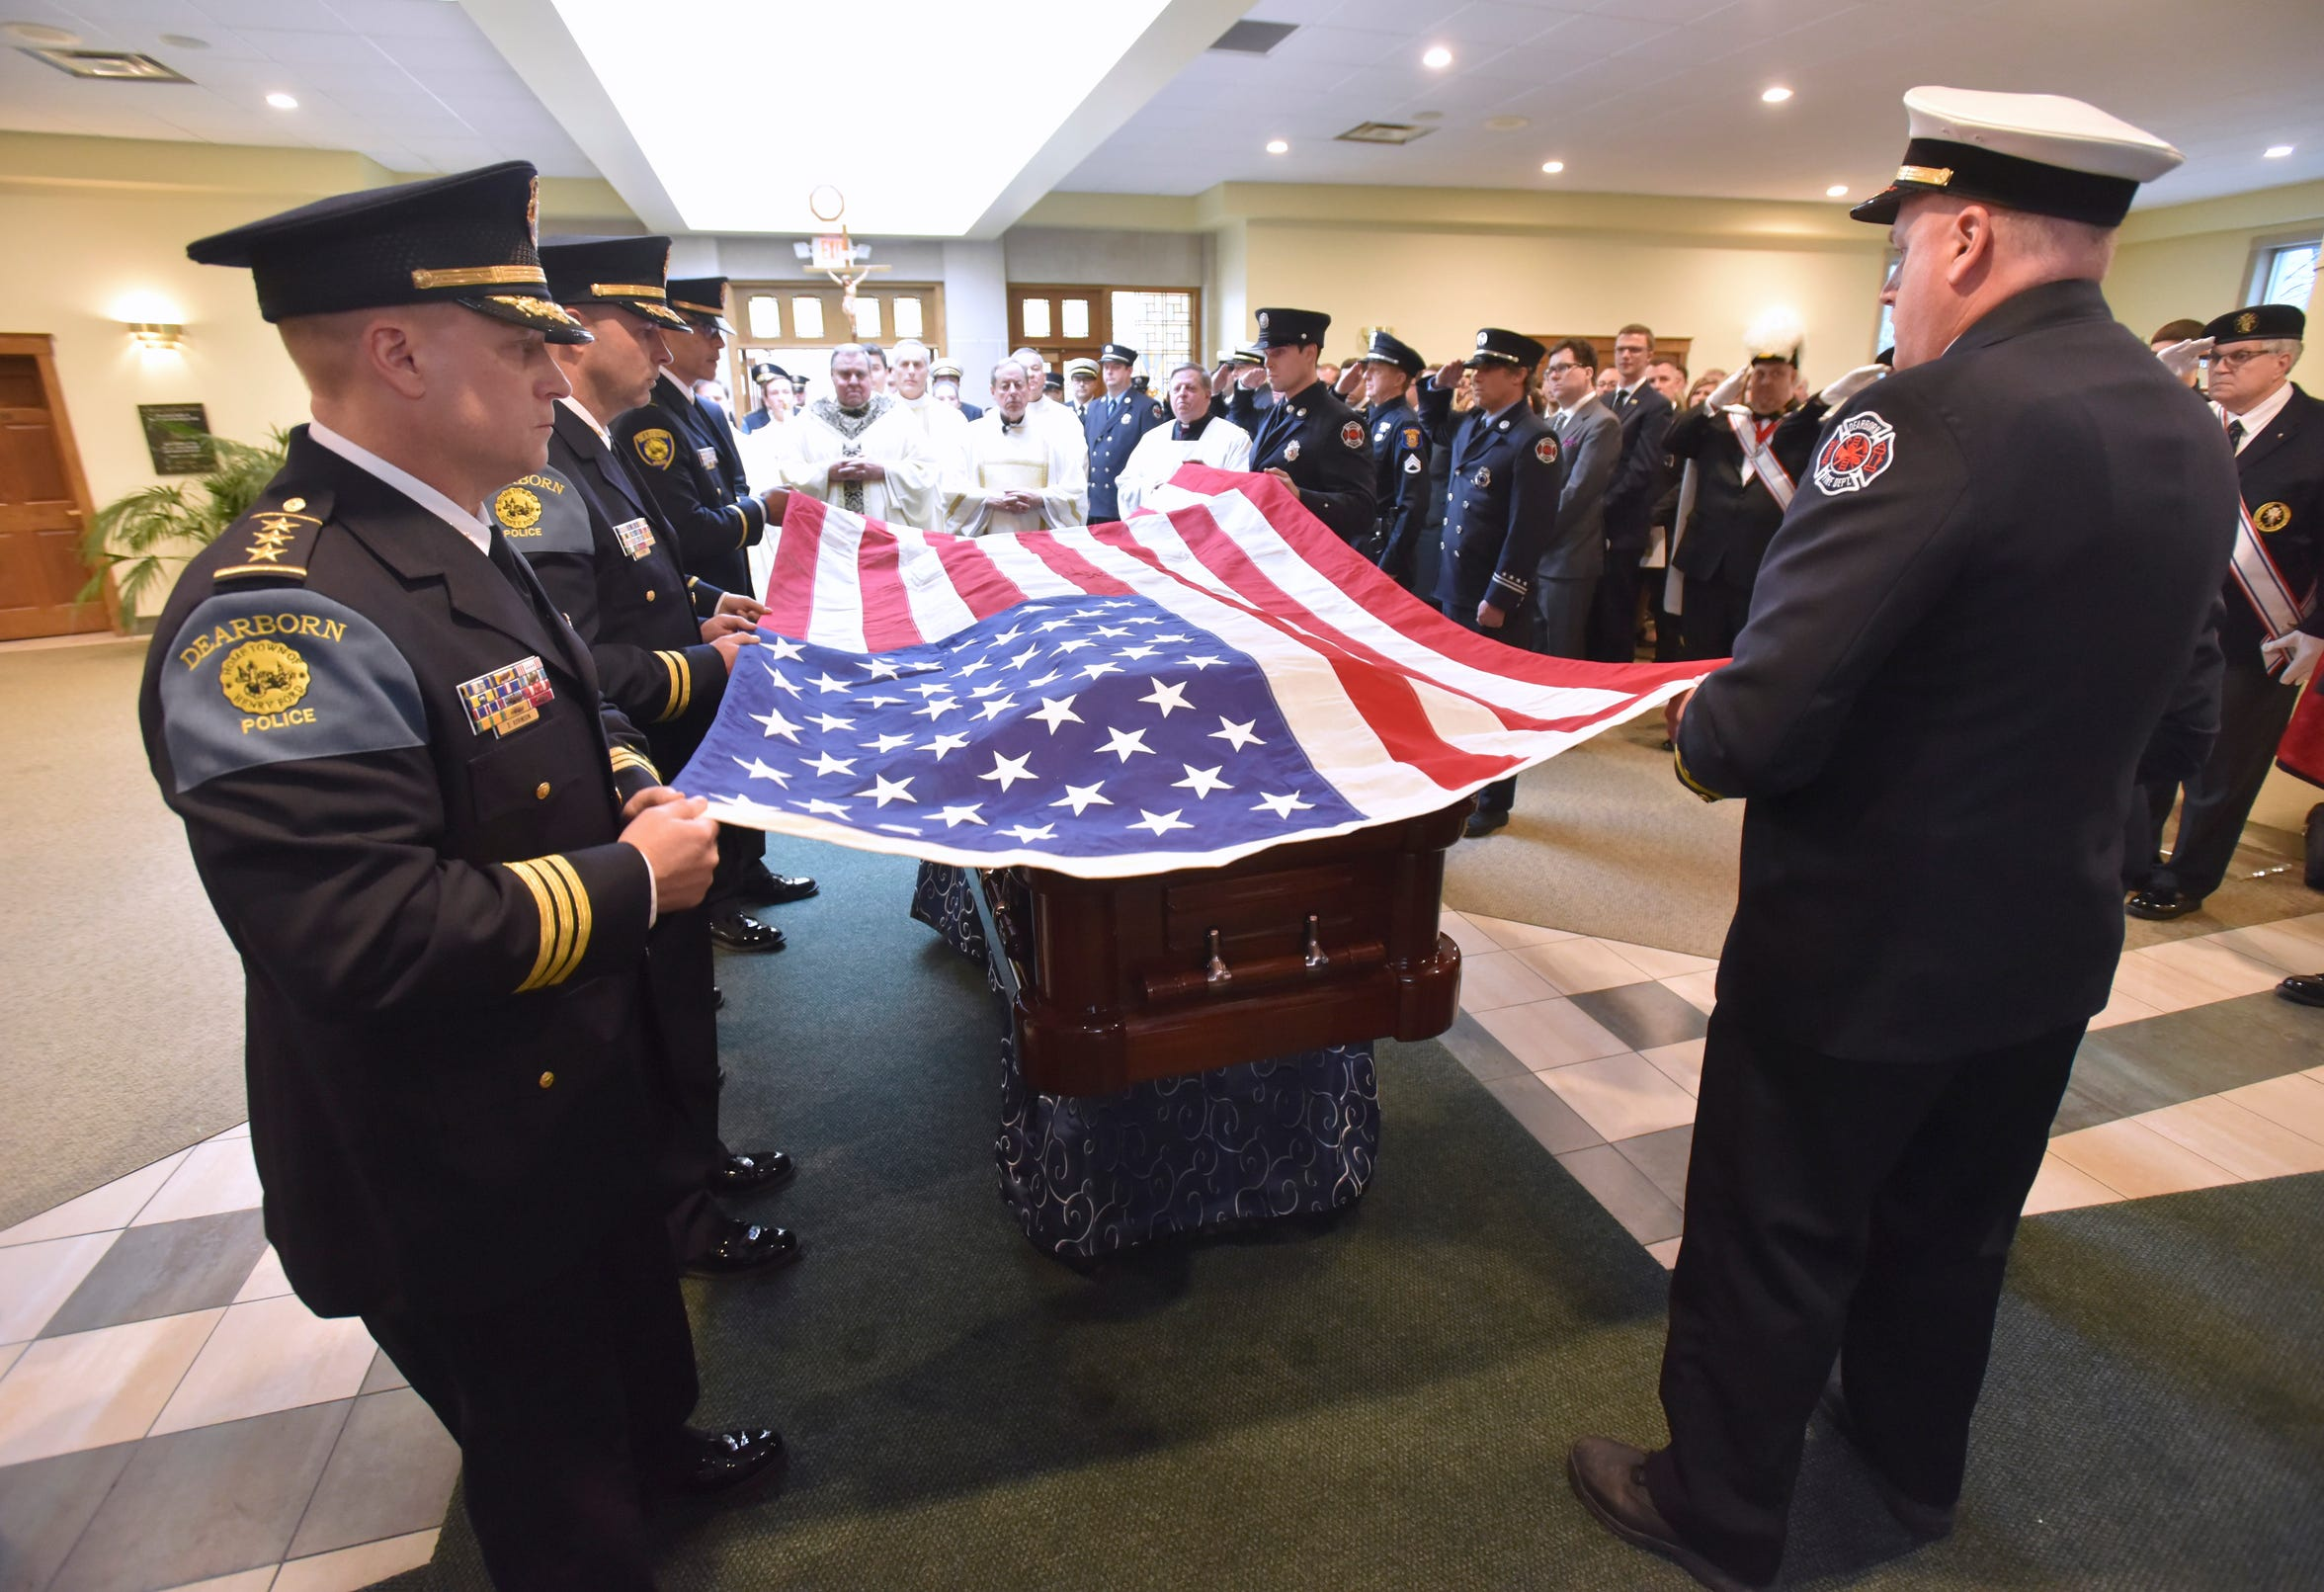 Dearborn police officers and fire fighters drape the United States flag over John Dingell's casket during a mass for the former U.S. Congressman February 12, 2019, at the Church of the Divine Child in Dearborn. Dingell, a Michigan Democrat who served in the U.S. House from 1955 to 2015, and was the longest-serving member of Congress in American history, died Feb. 7,2019 at the age of 92.